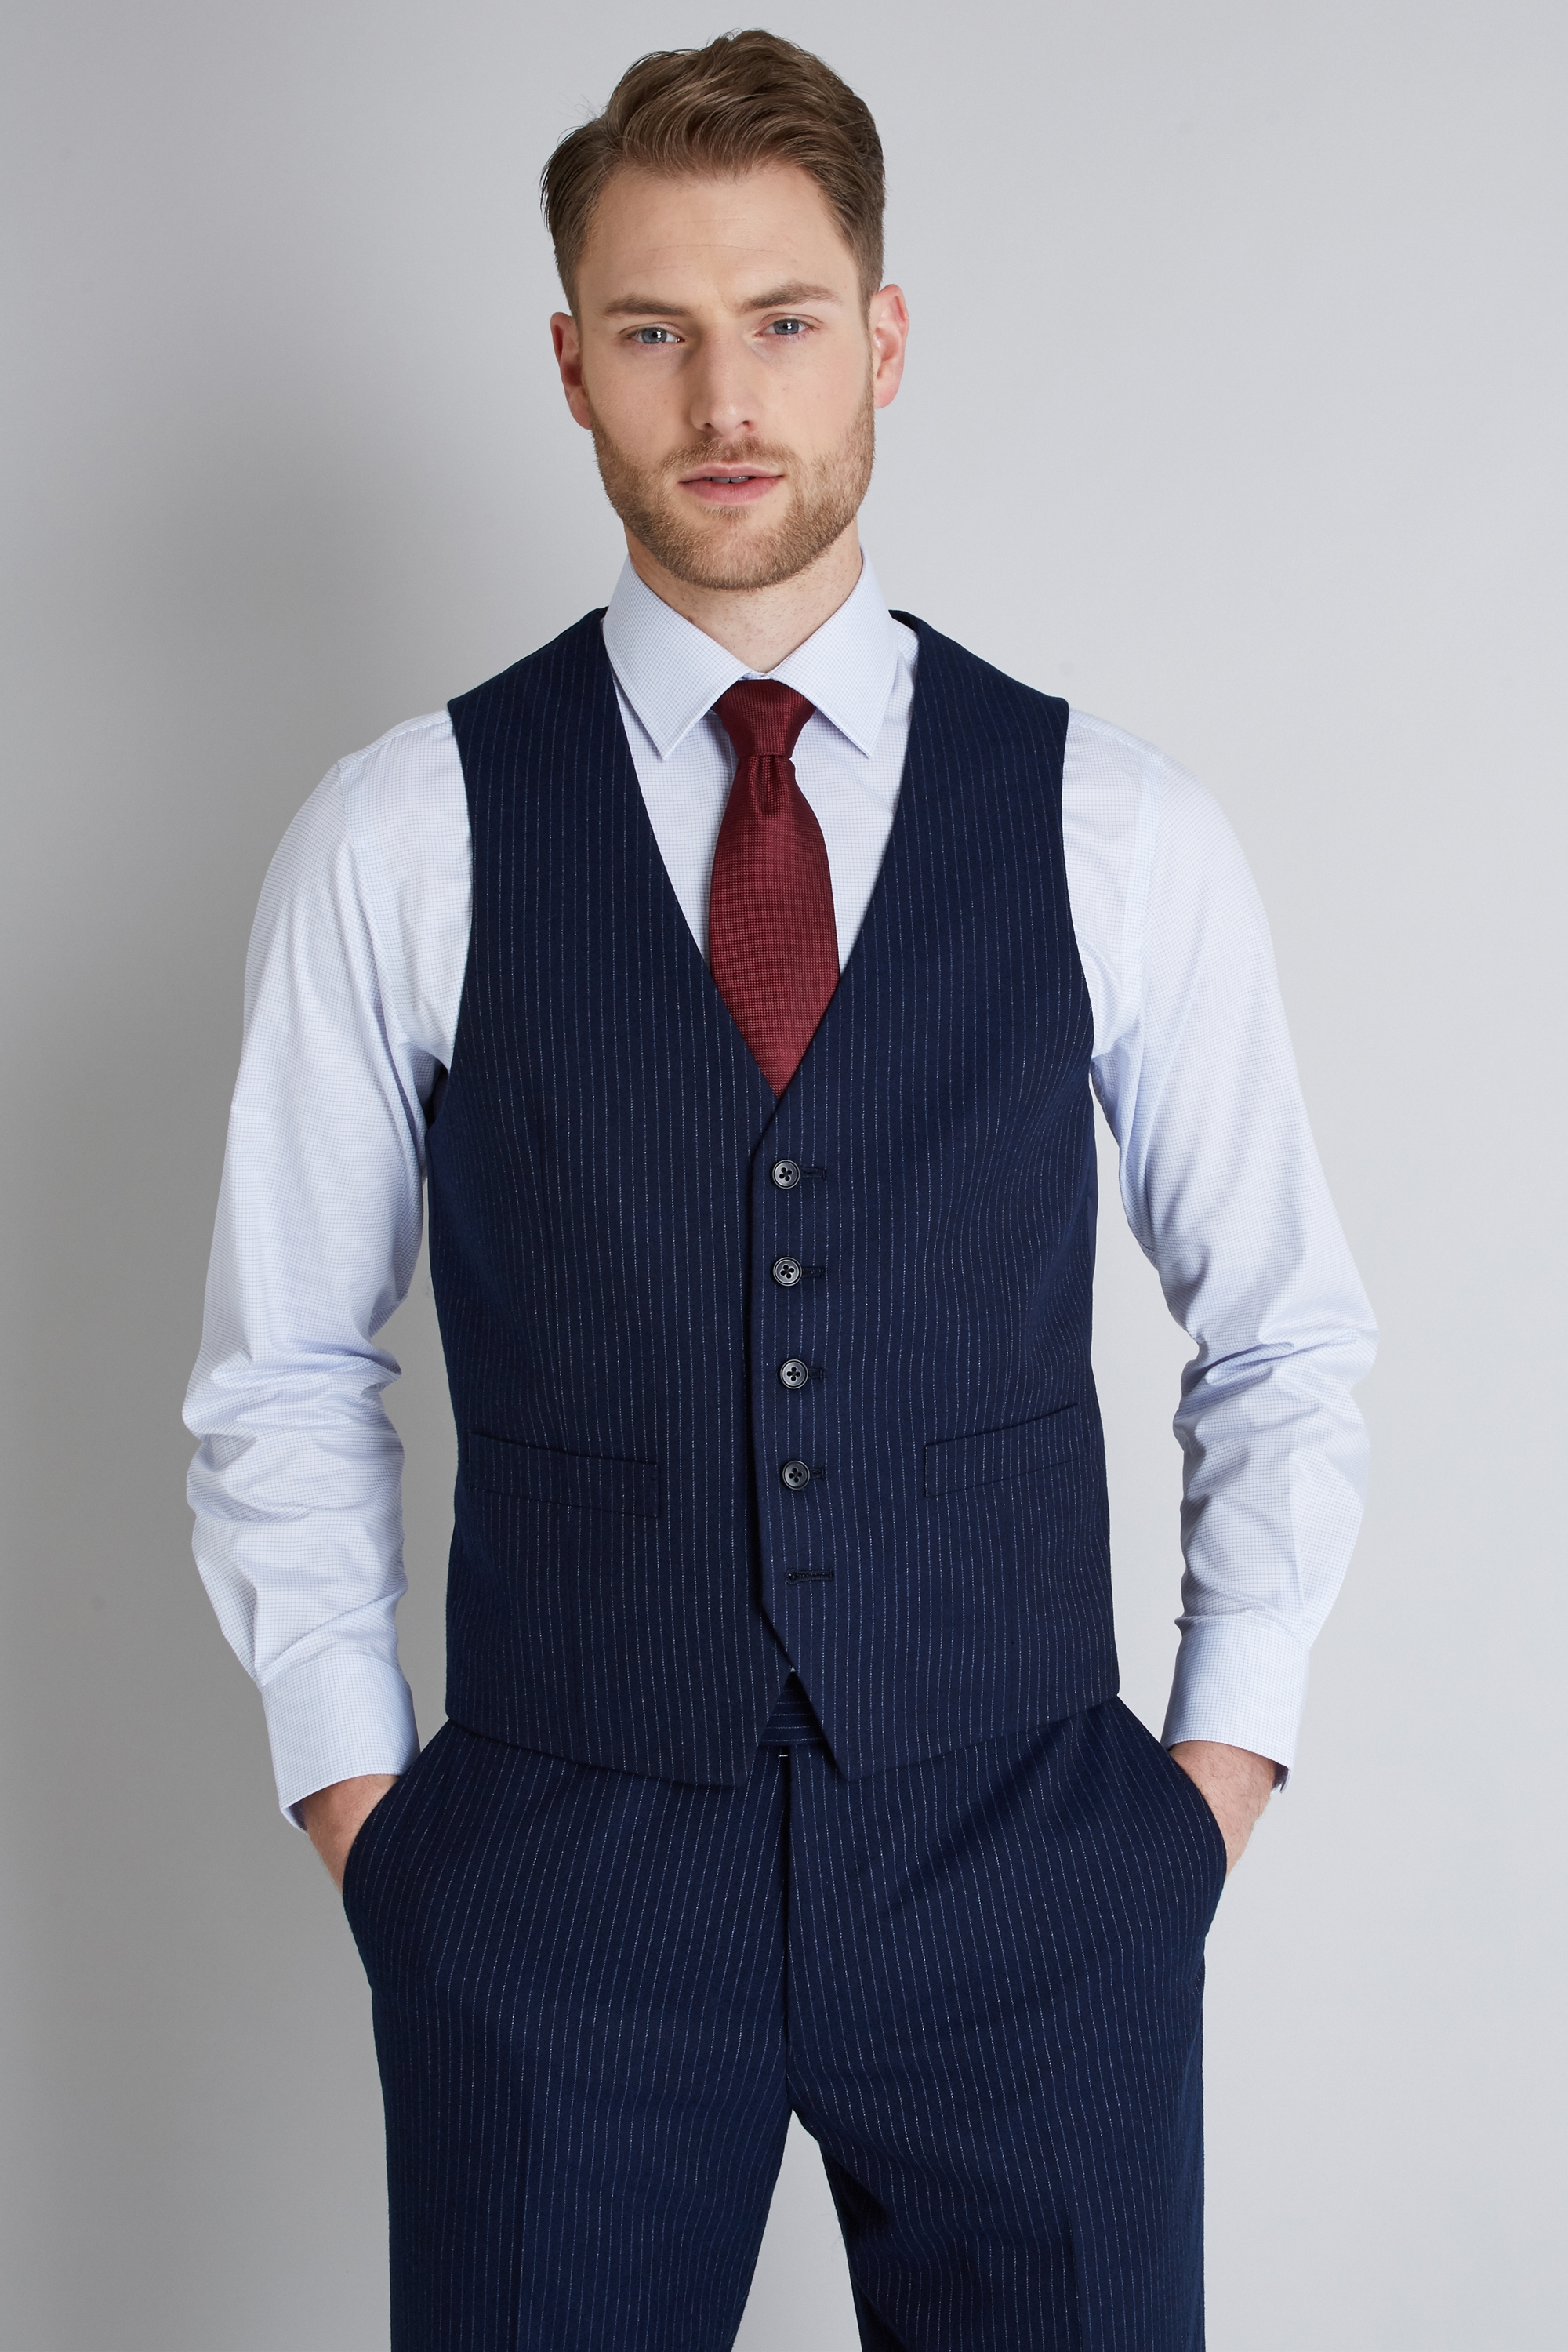 786-35 New mens formal poly viscose 5 button charcoal self stripe vest